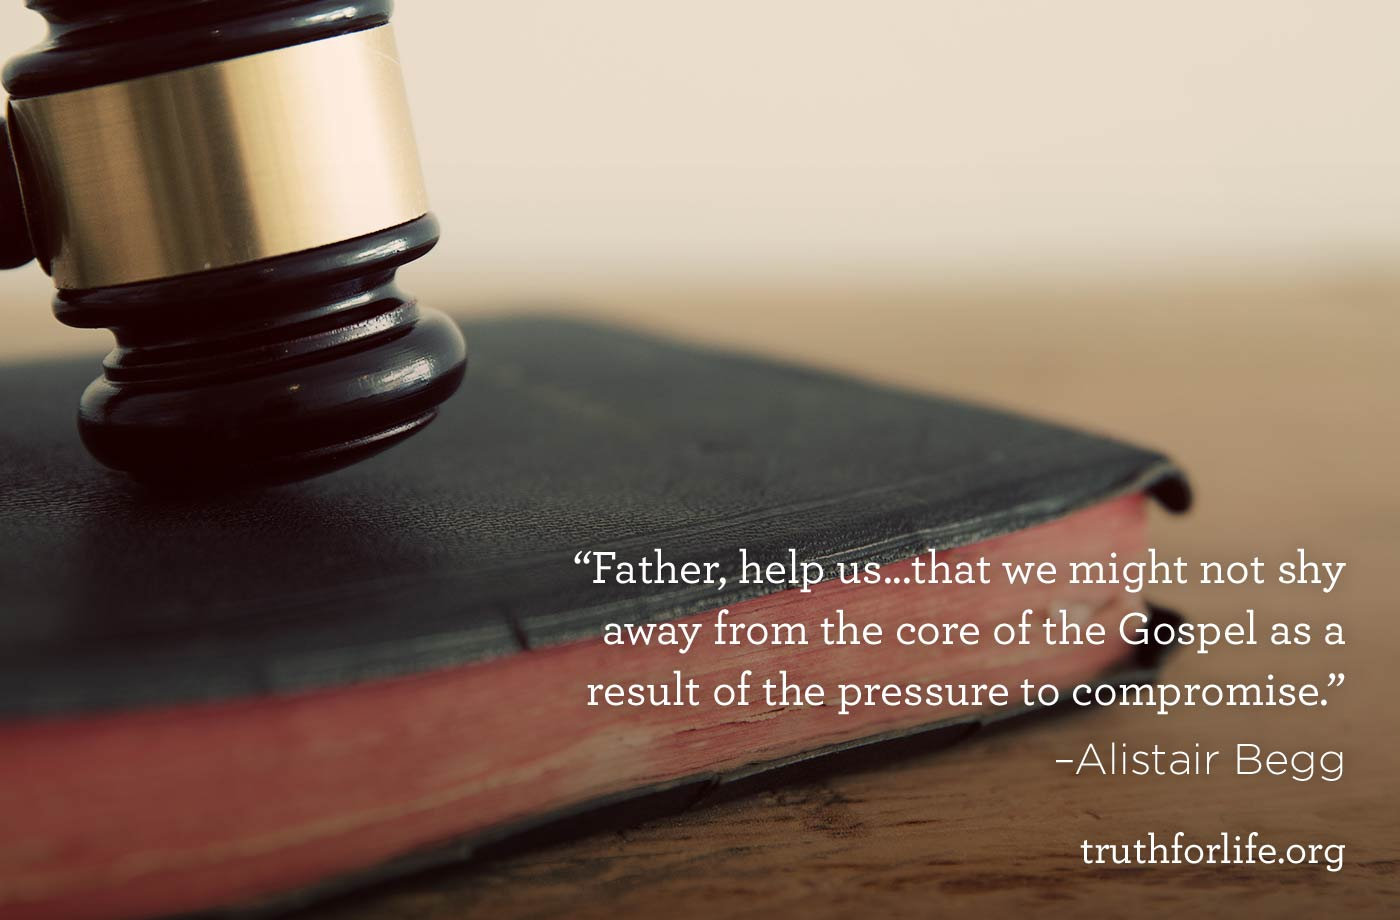 thumbnail image for Father help us that we might not compromise the Gospel